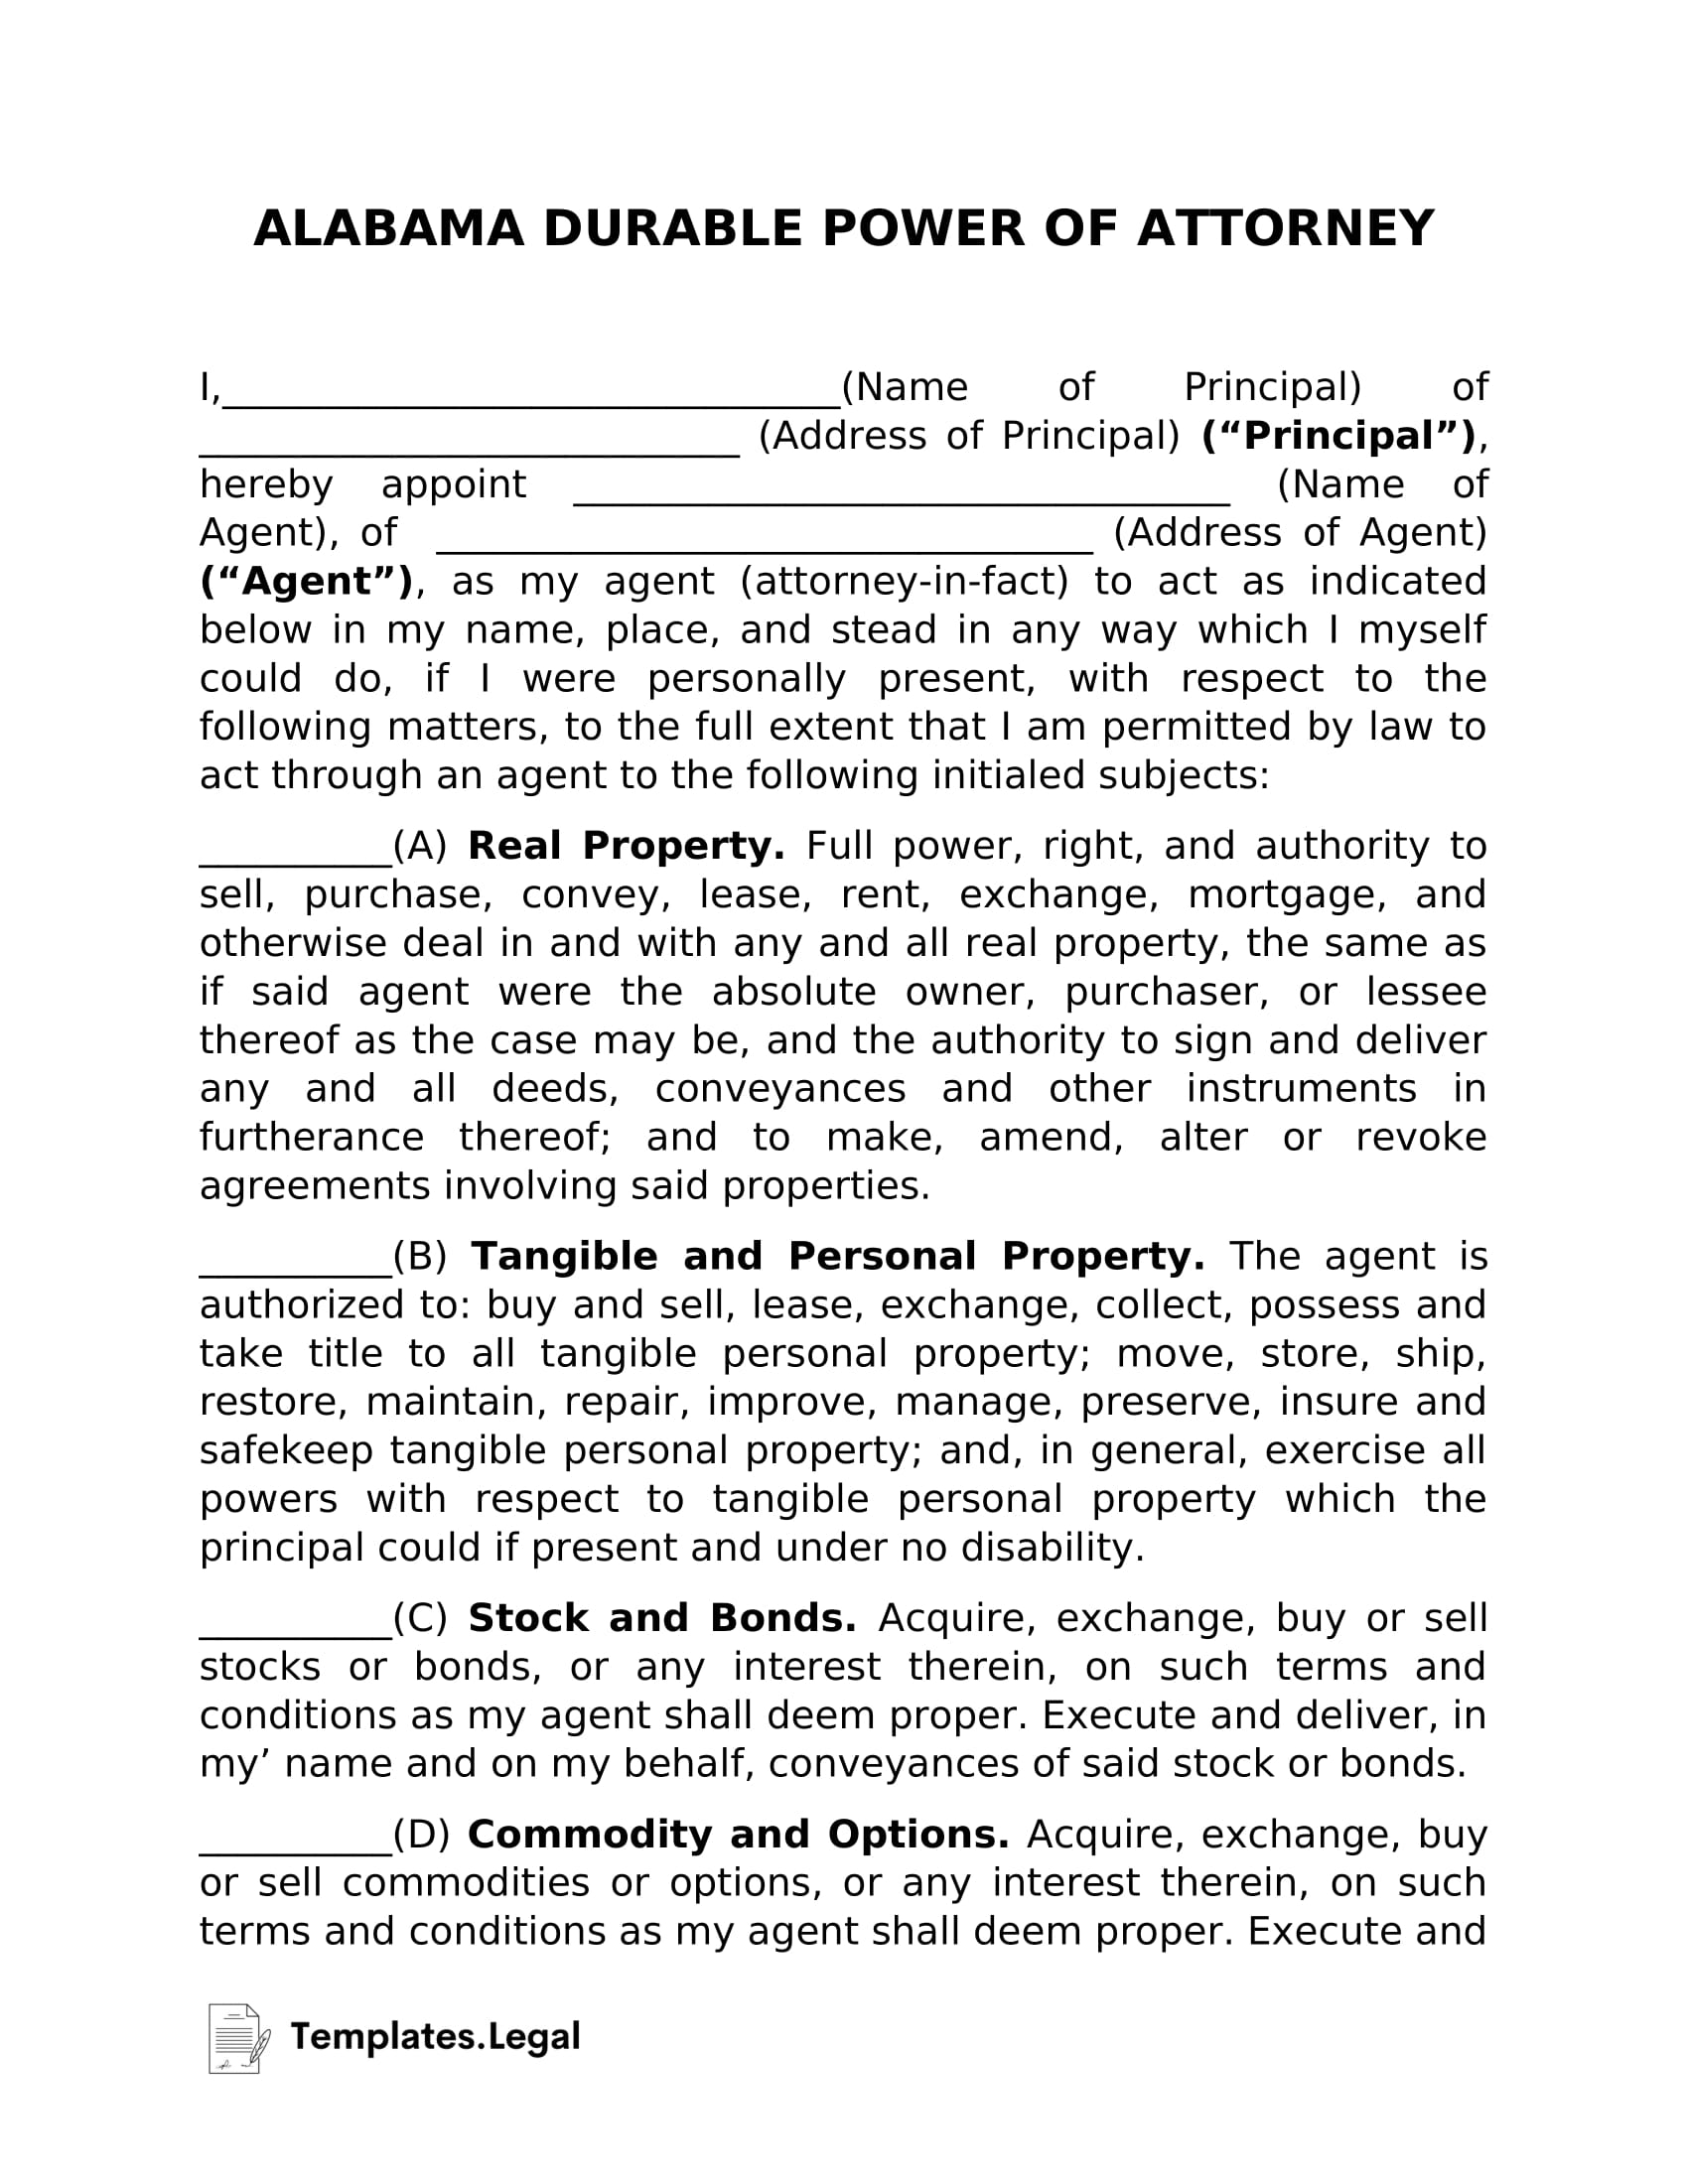 Alabama Durable Power of Attorney - Templates.Legal